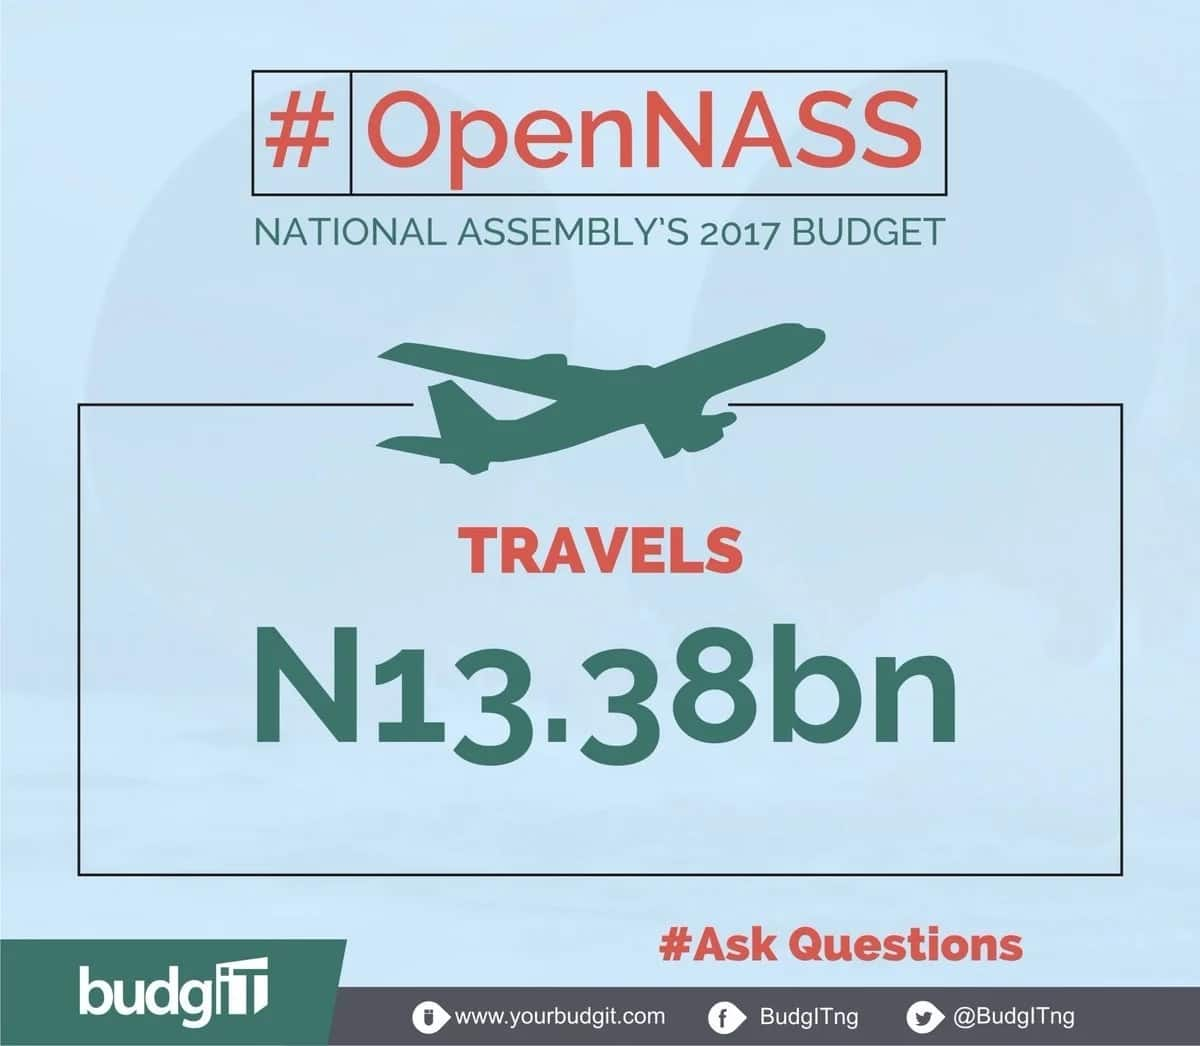 National Assembly budget for travel. Picture Credit: BudgIT